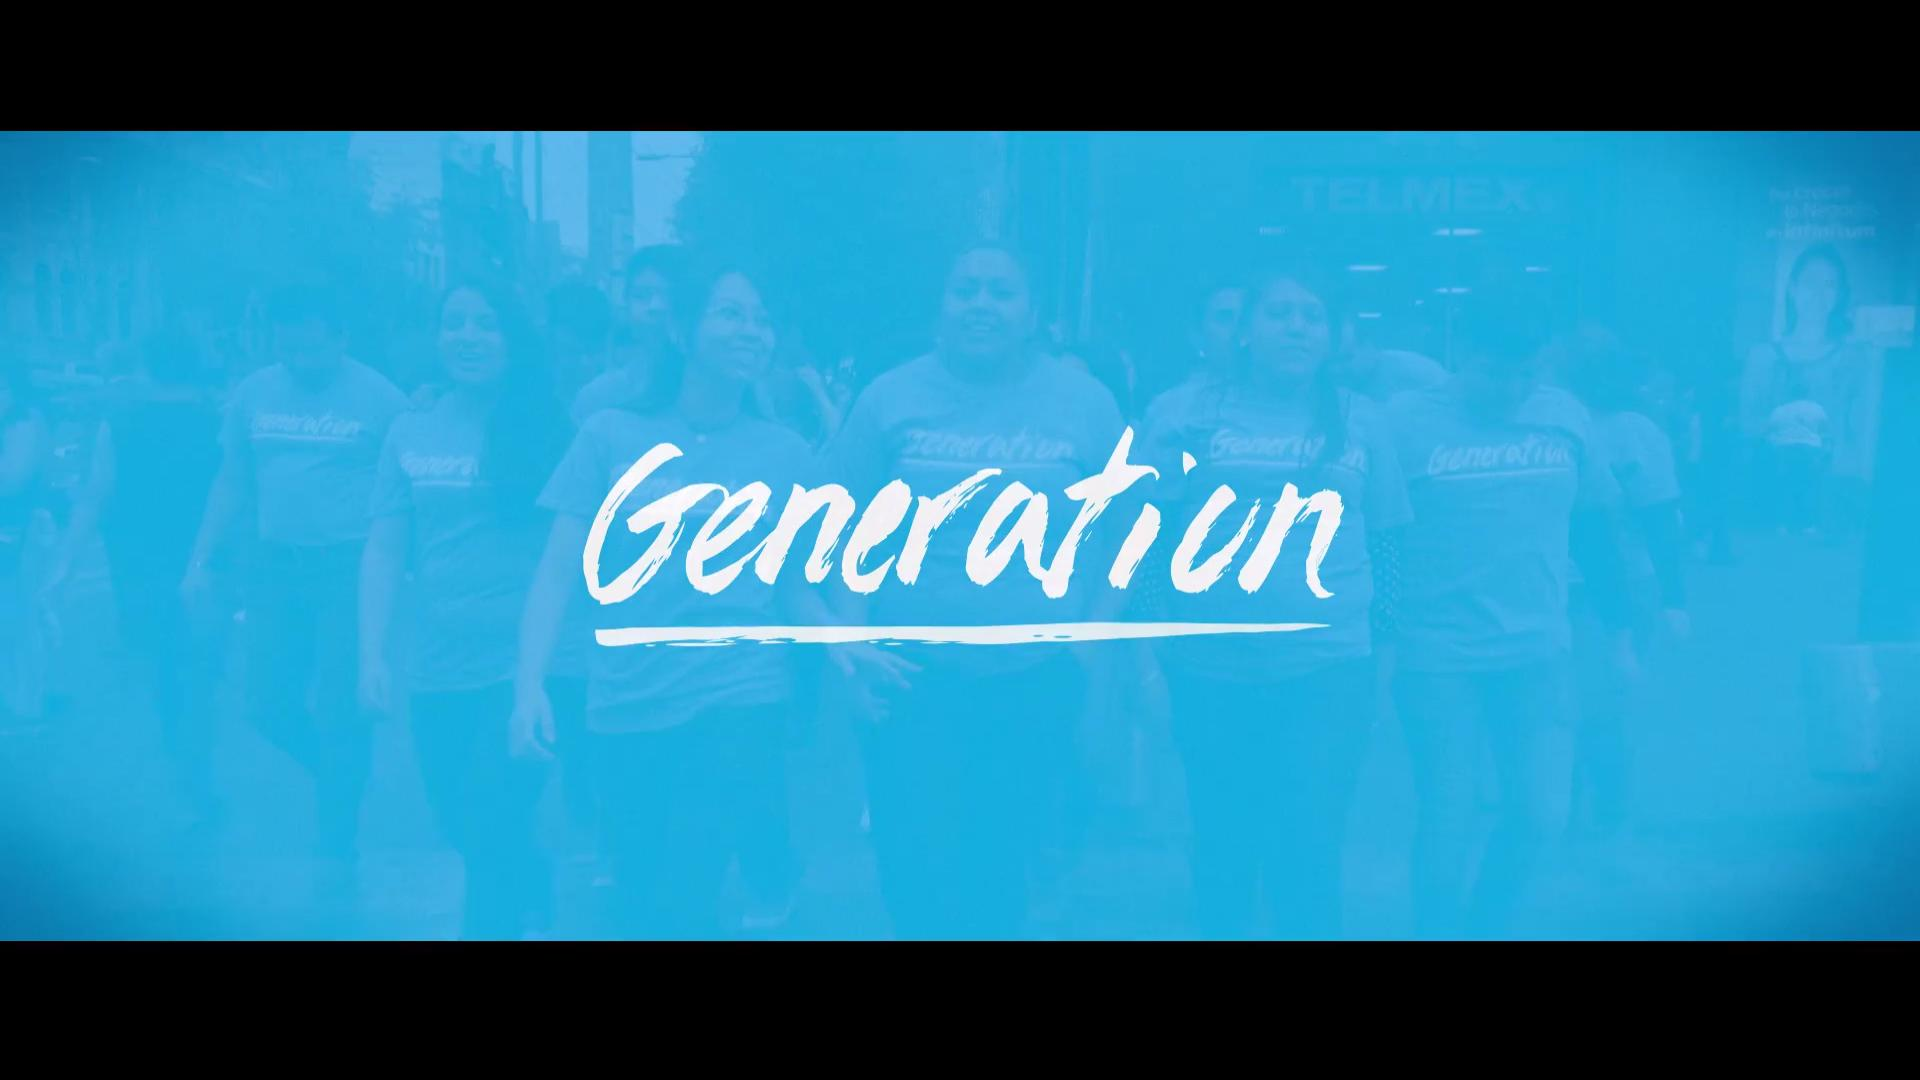 Introducing Generation